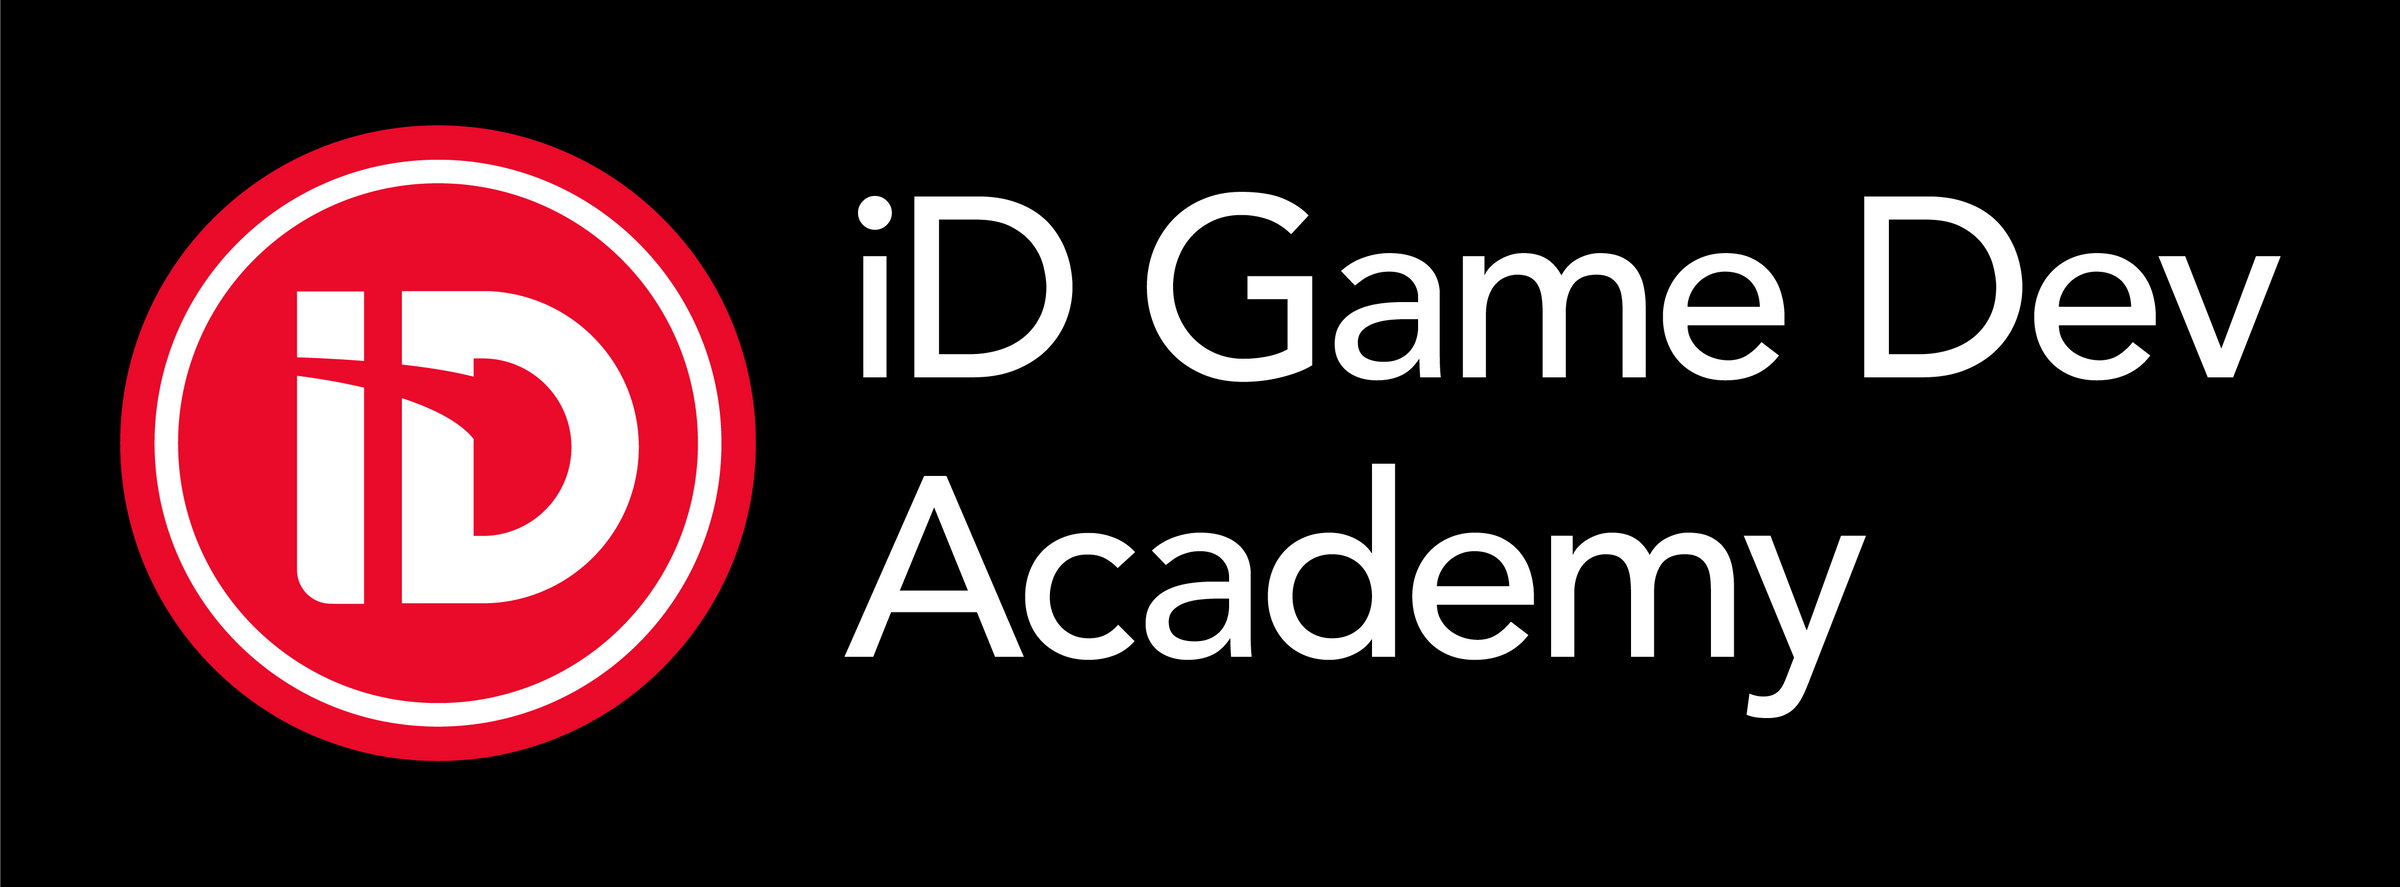 iD Game Dev Academy for Teens - Held at UC Berkeley